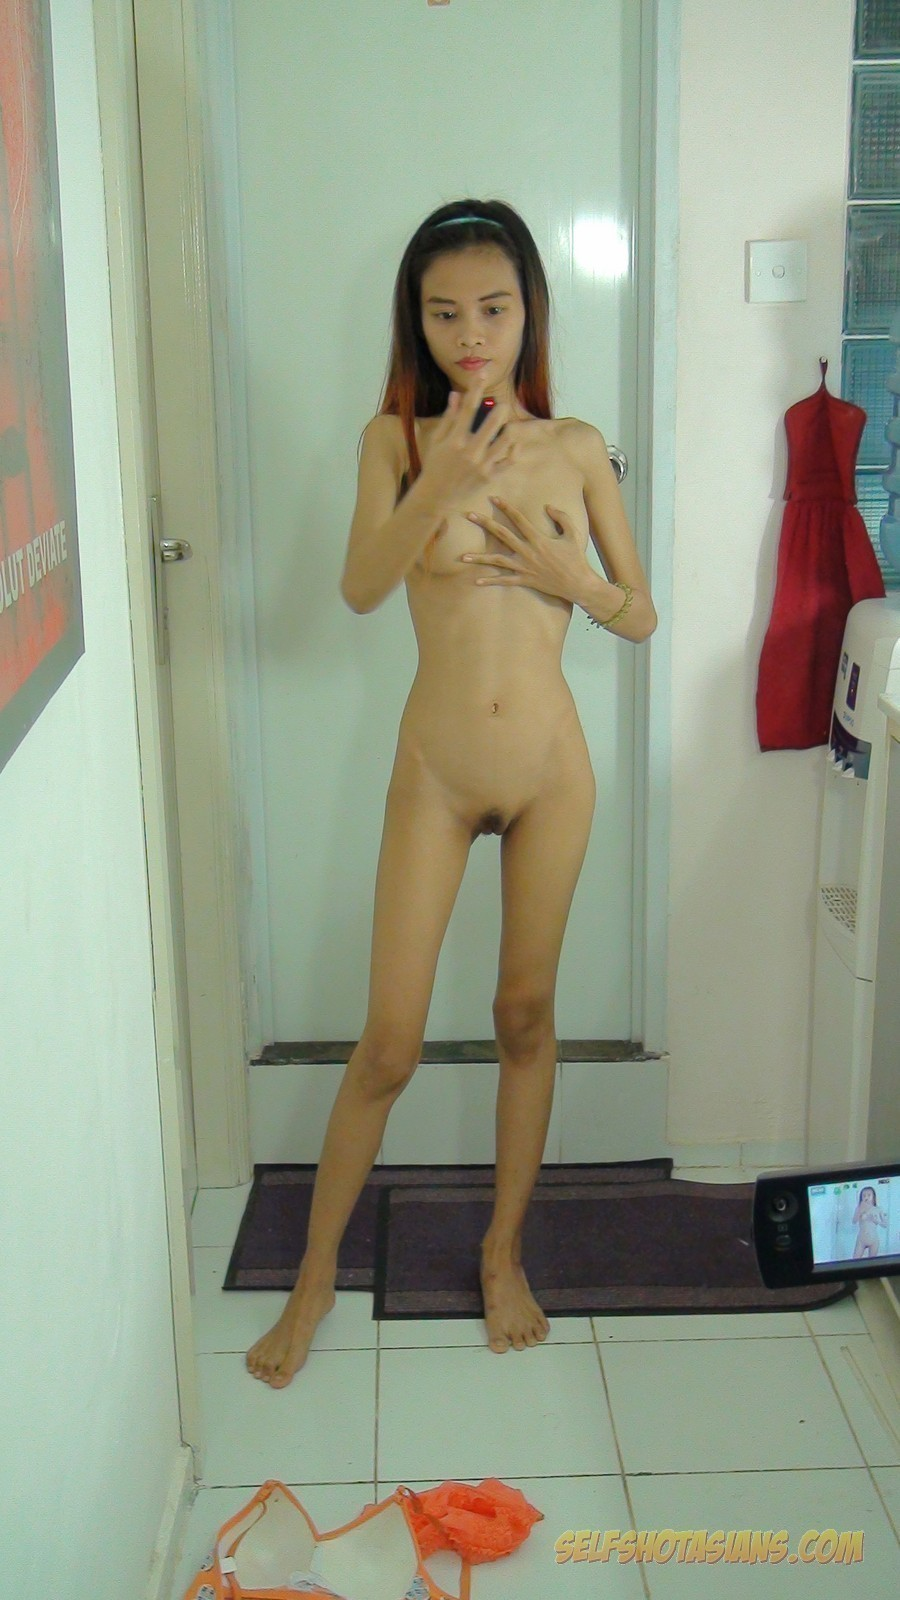 Hot and hard cosplay fucking in japan with all natural chick 1